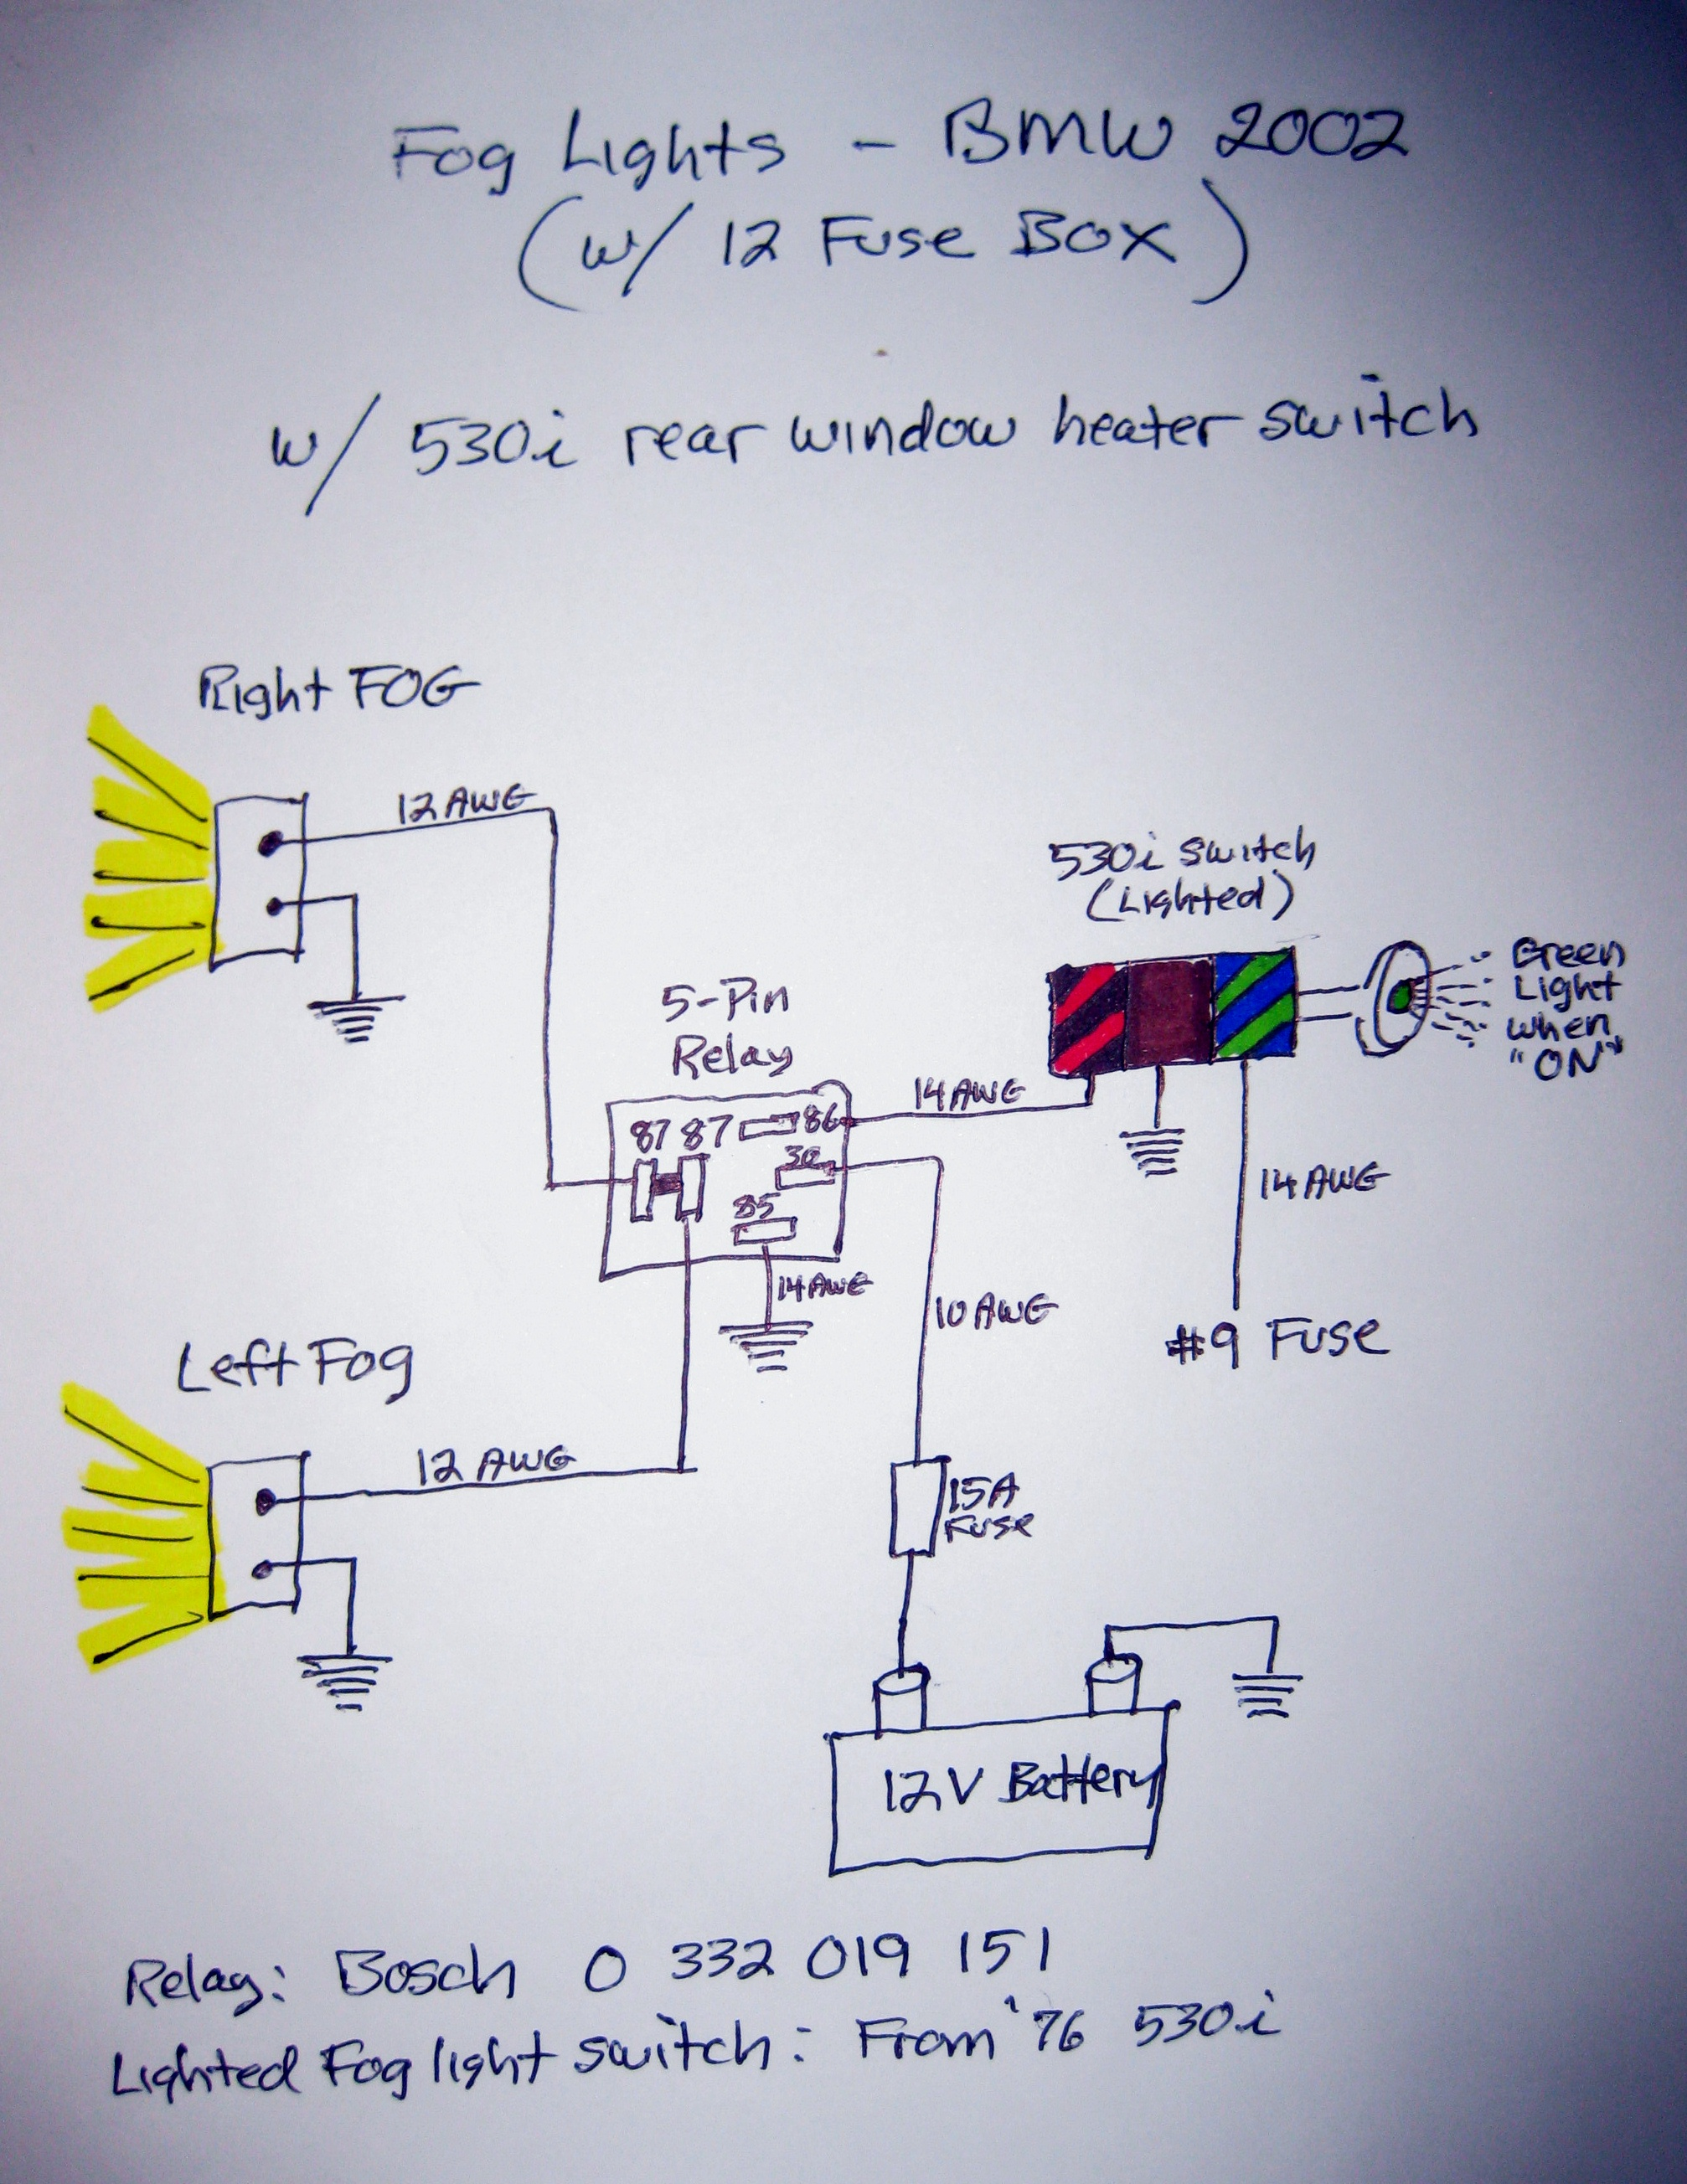 Not Enough To Illuminate The Bulbs Here Is The Typical Wiring Diagram